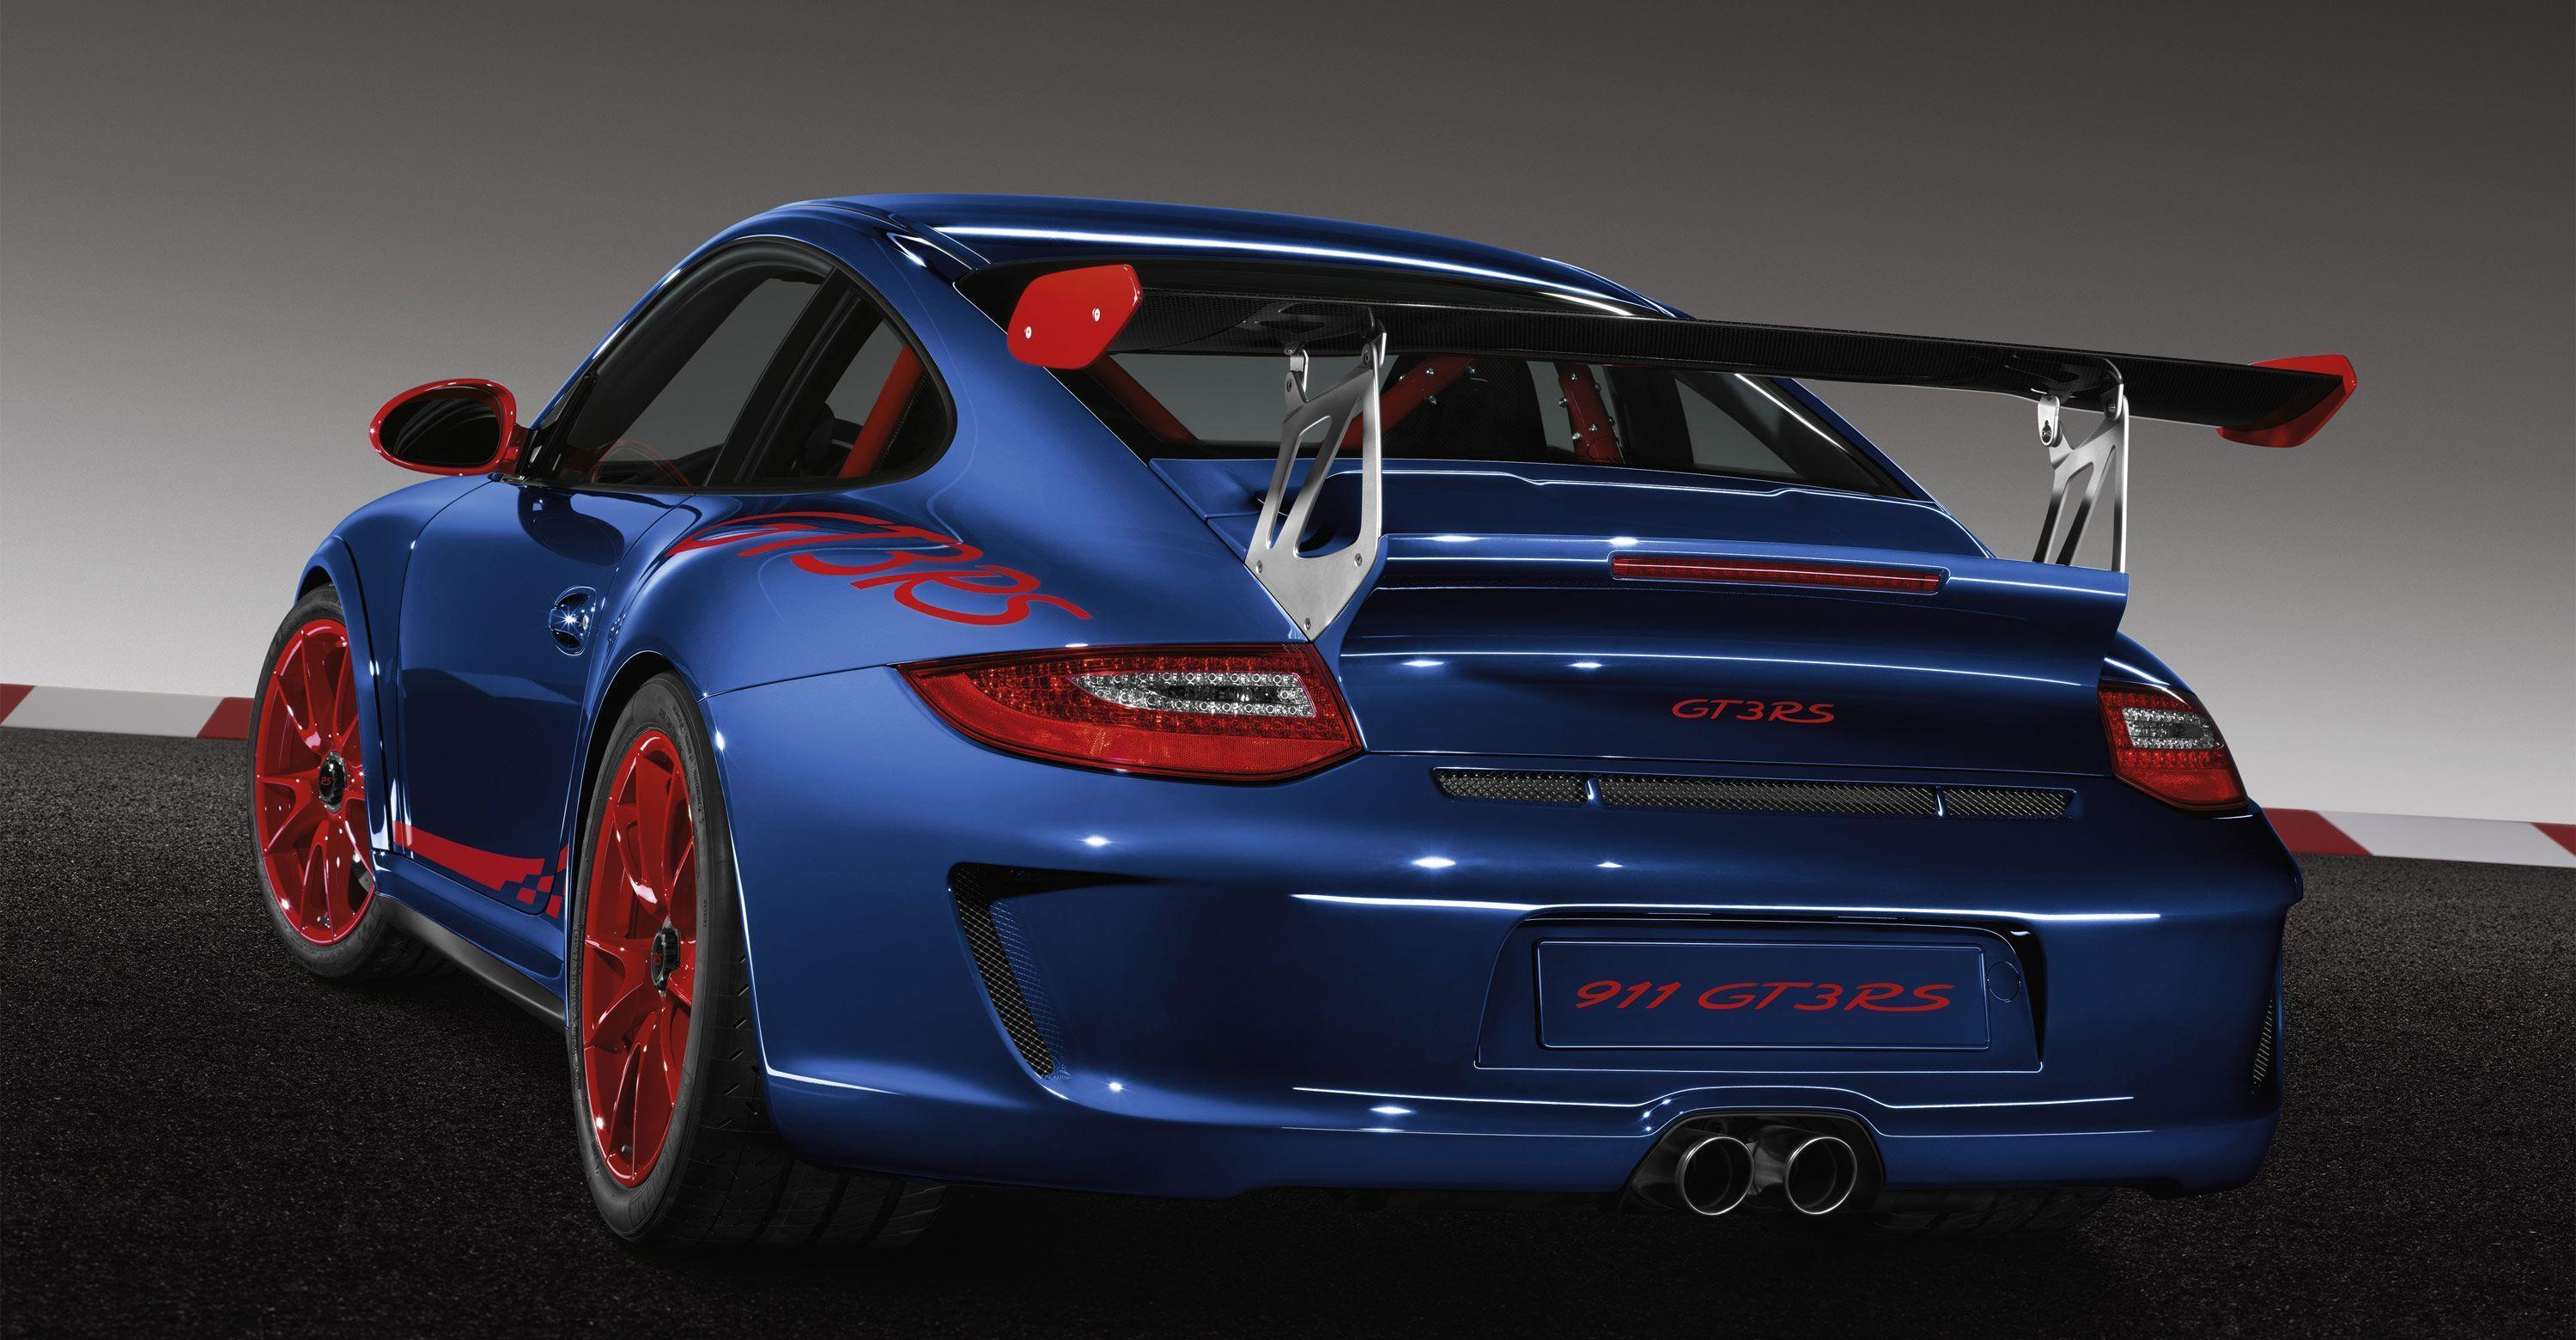 Find Latest 2015 Porsche Gt3 Rs Reviews and New Release Date on